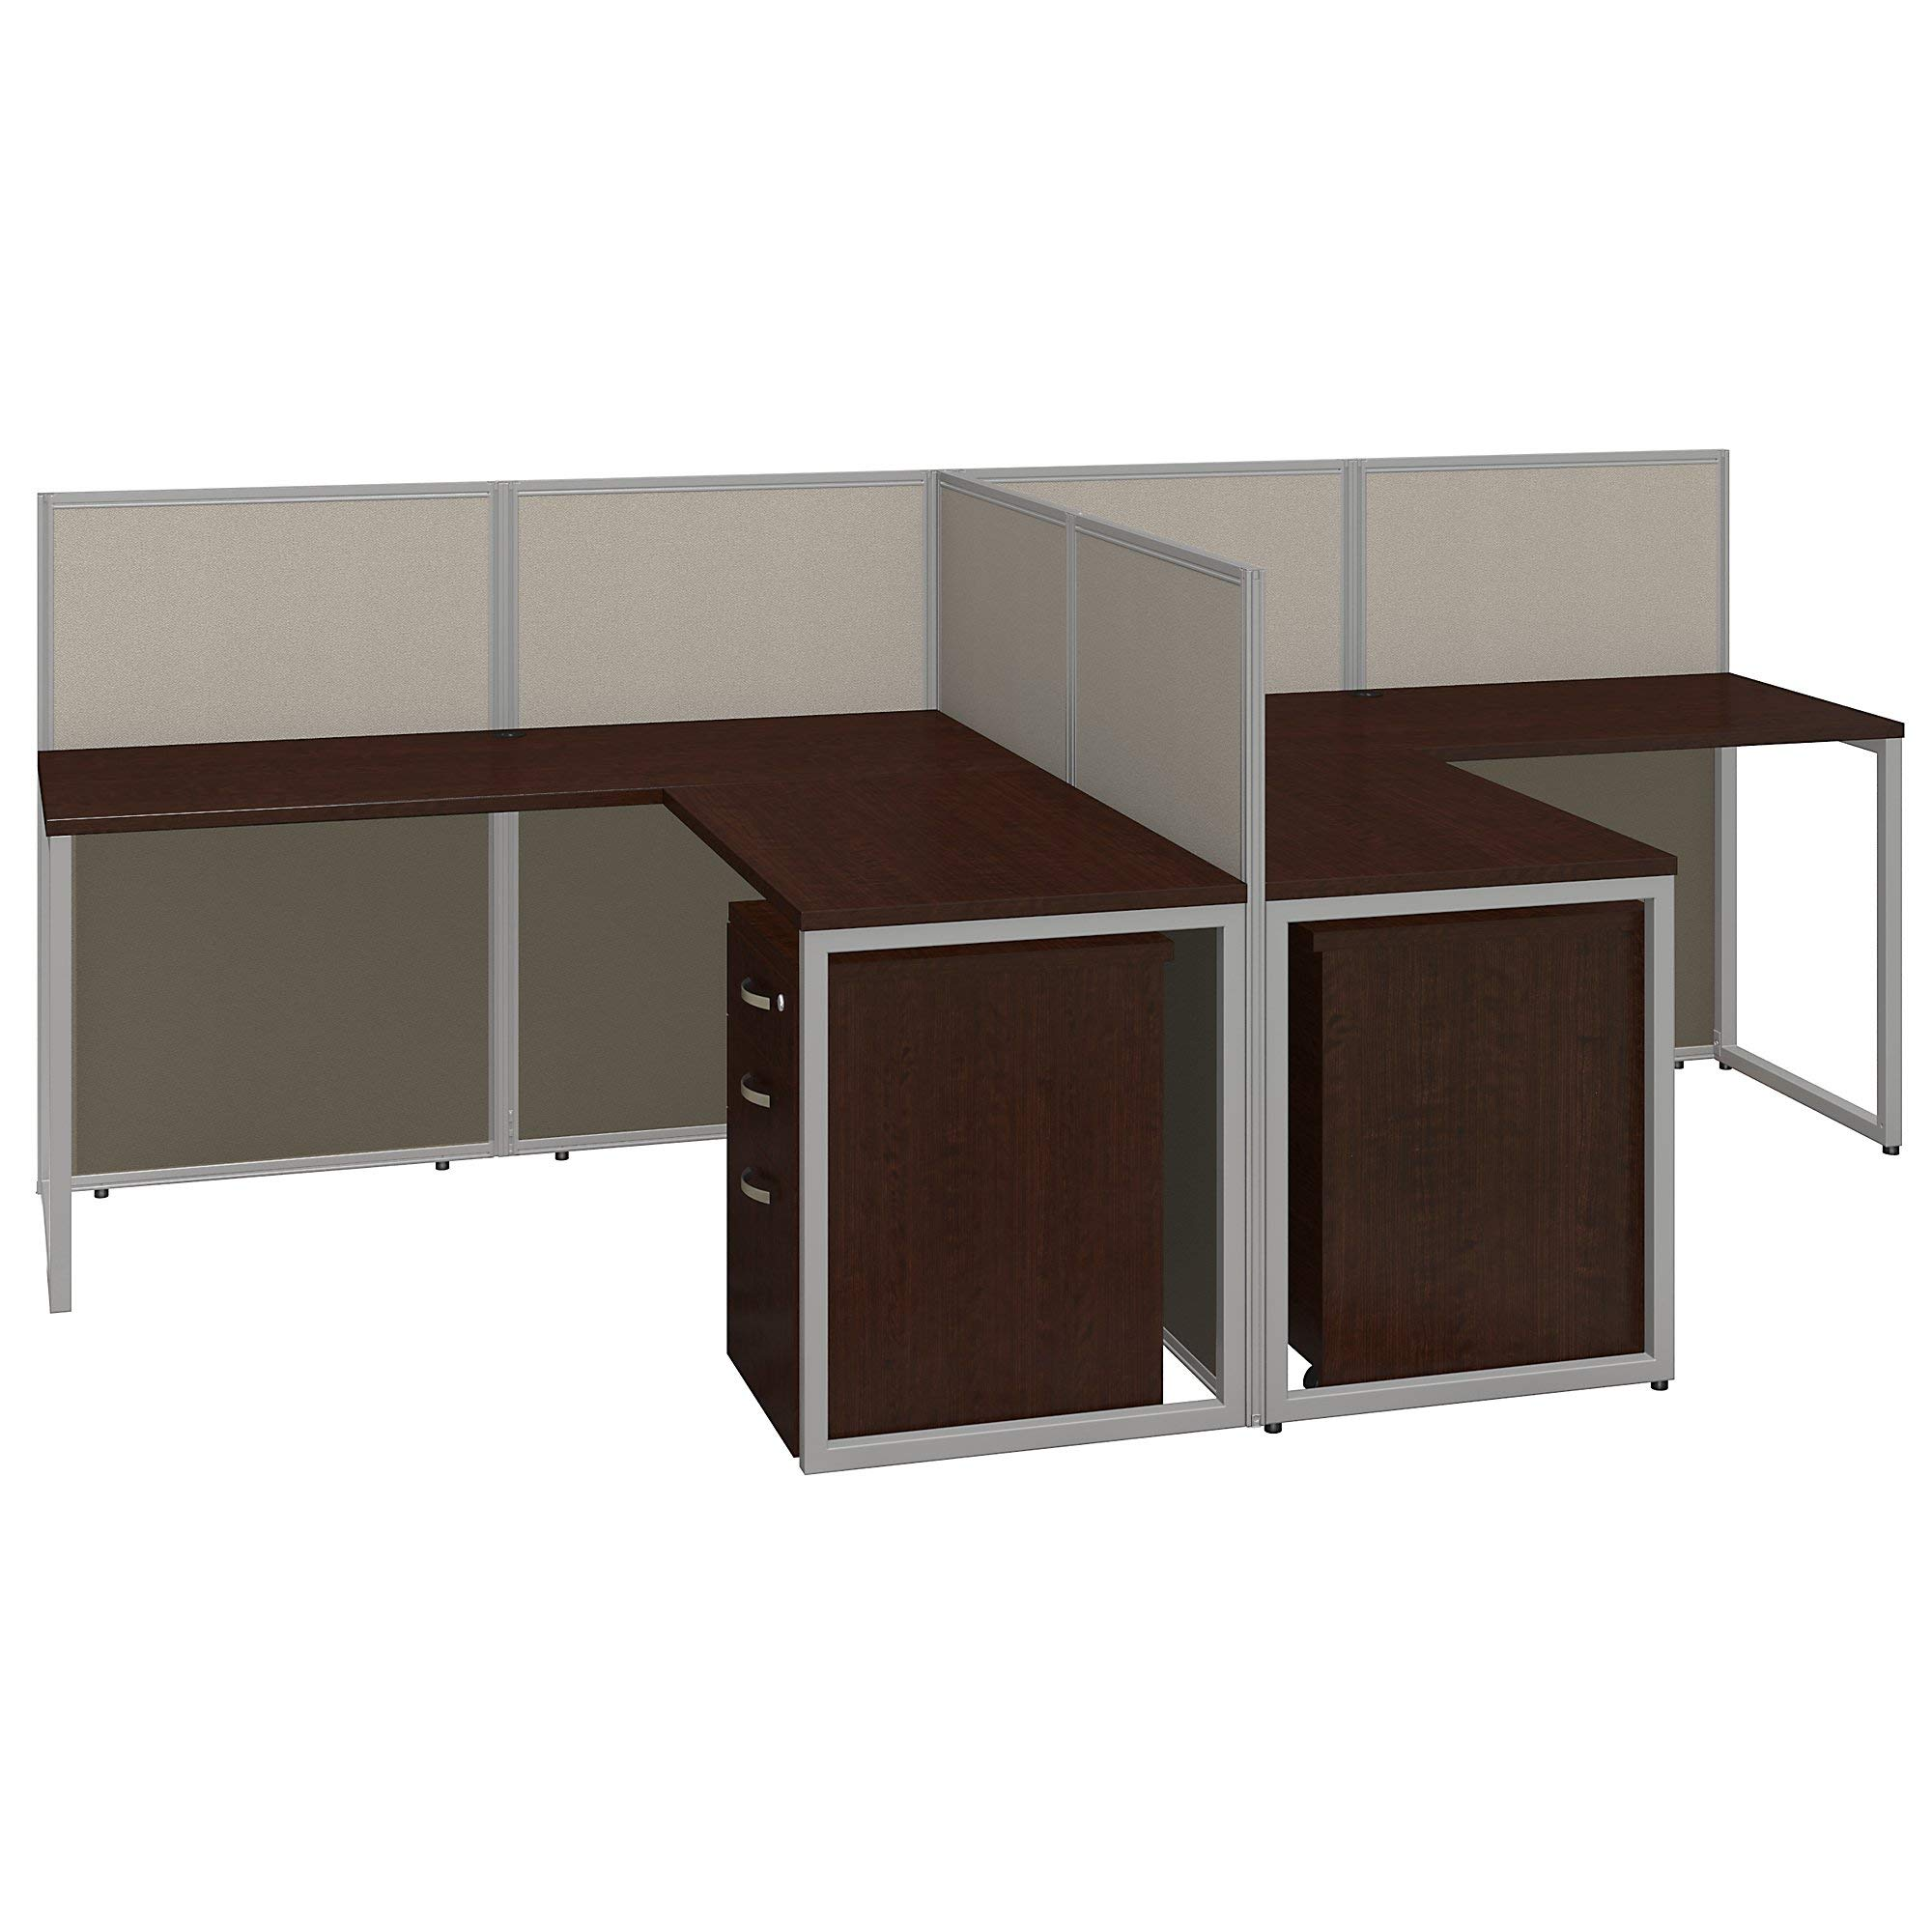 Bush Business Furniture Easy Office 60W Two Person L Shaped Desk Open Office with Mobile File Cabinets in Mocha Cherry by Bush Business Furniture